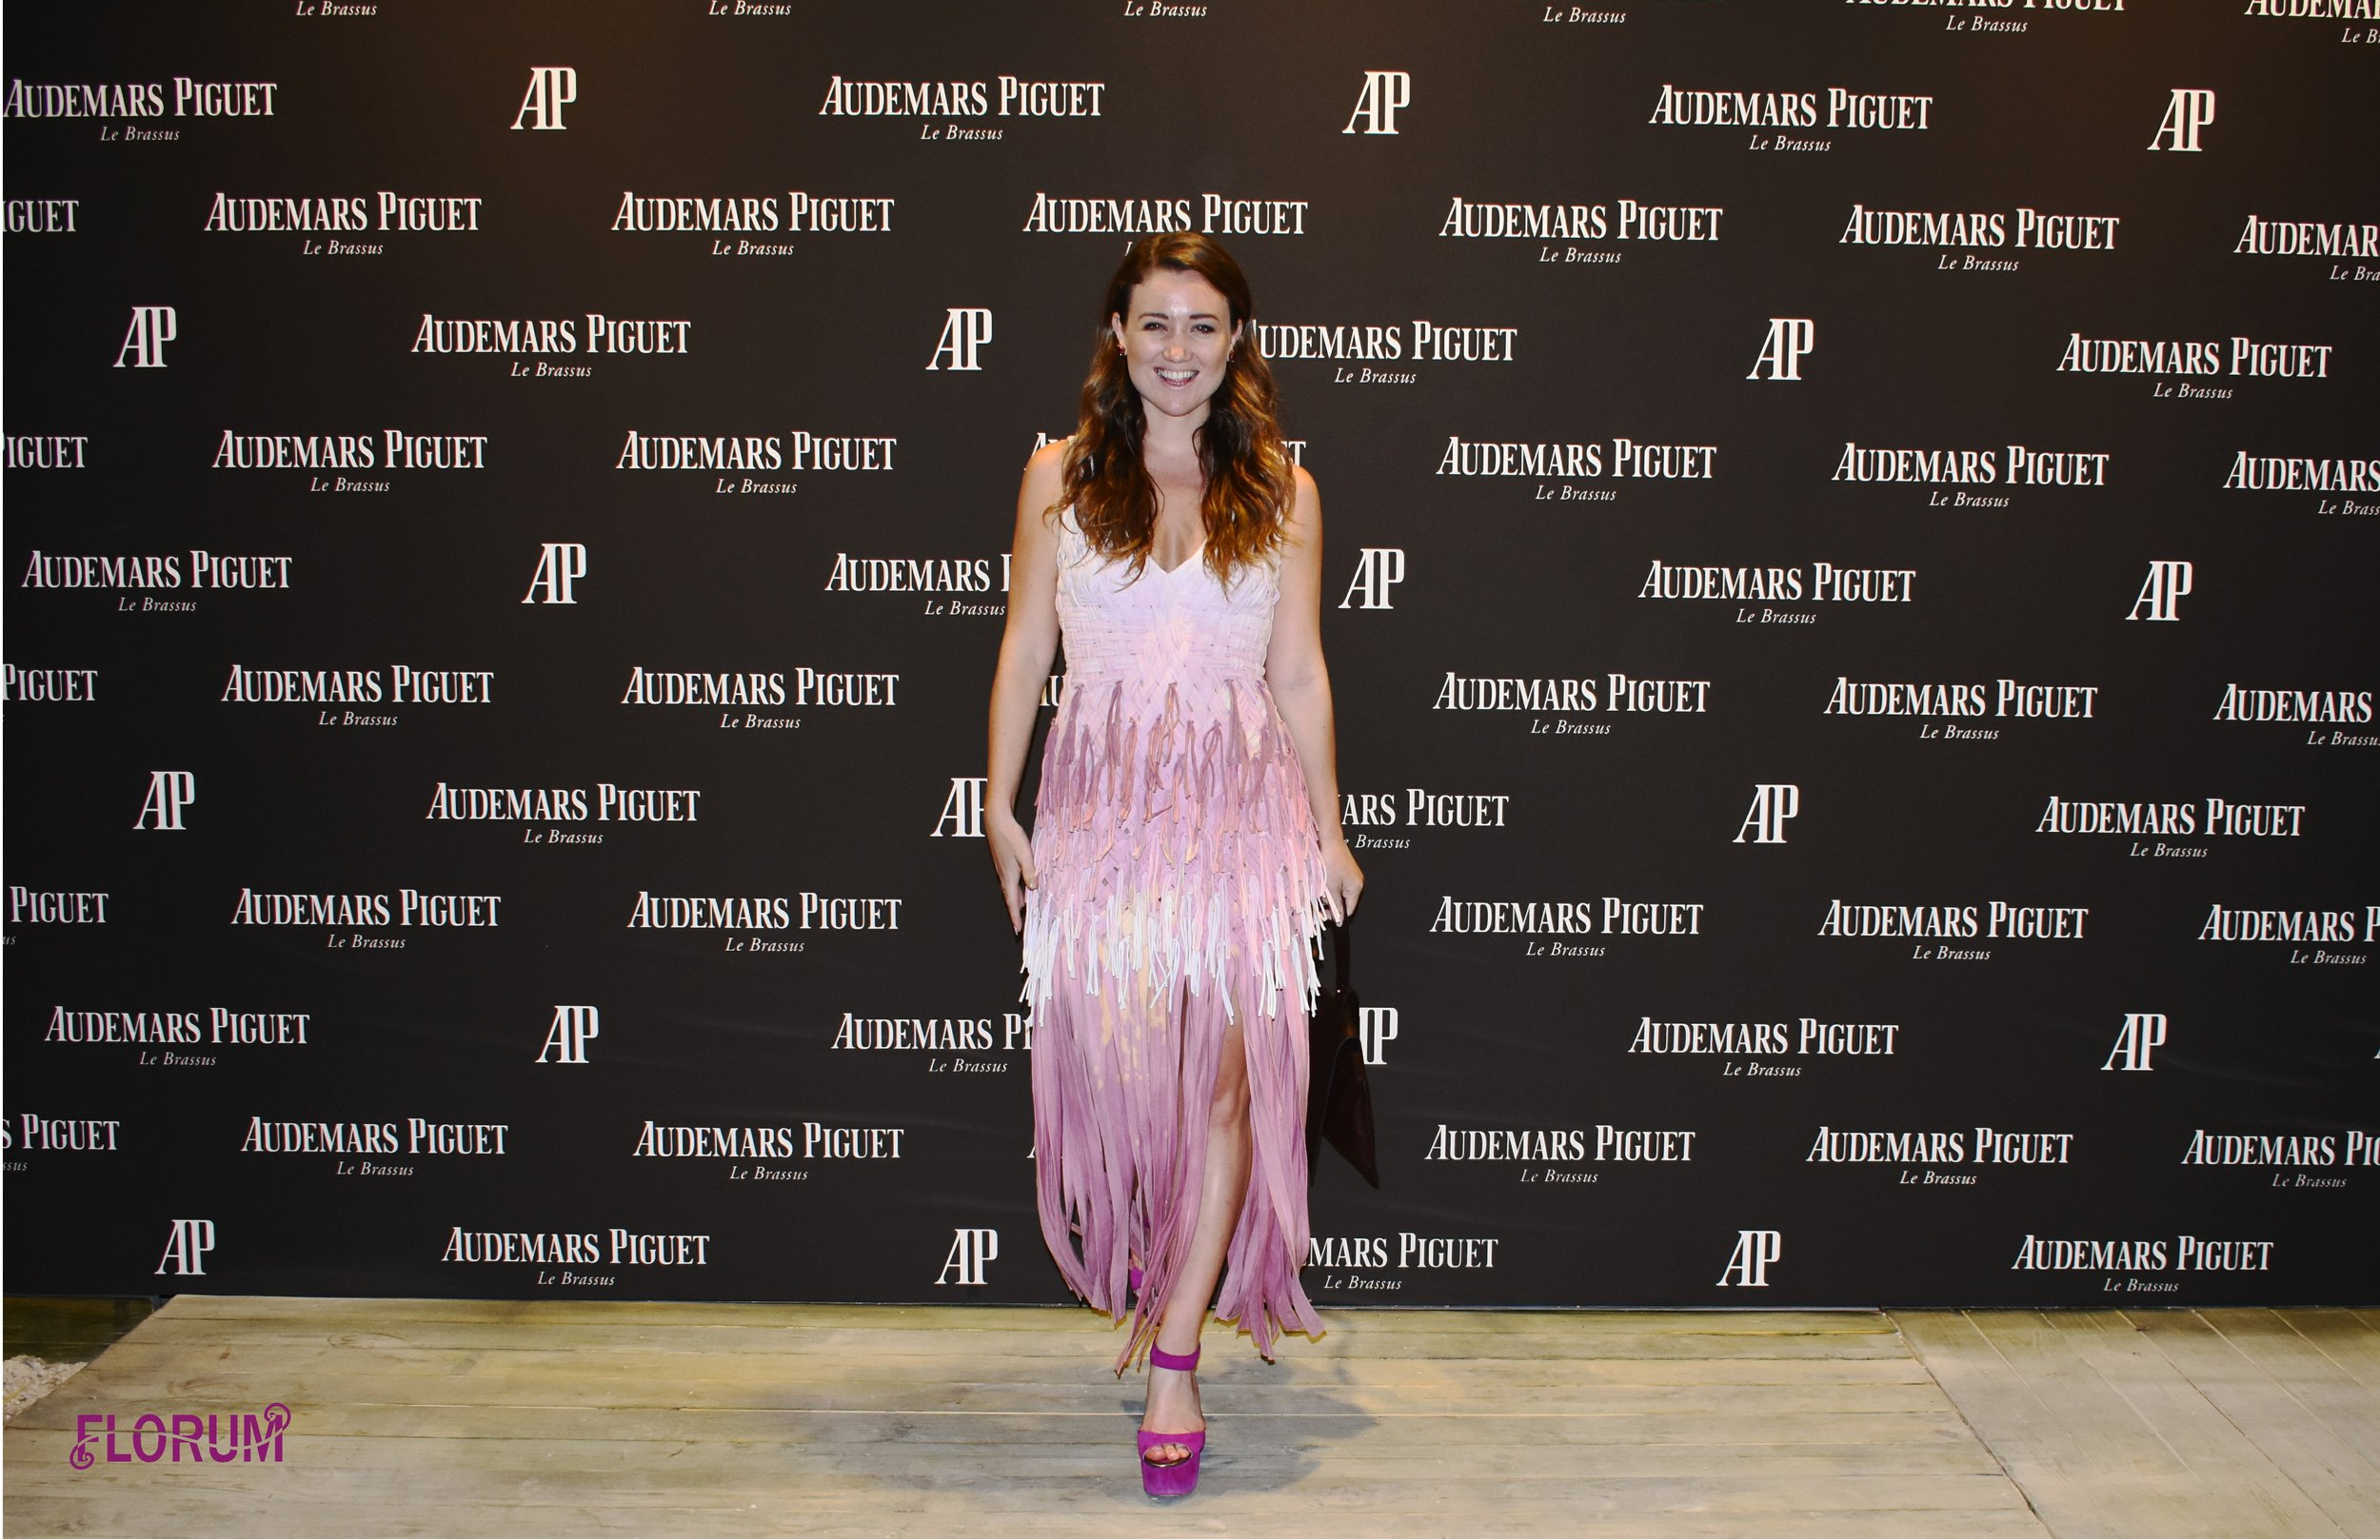 Noelle Lynne wearing an ethically made dress, designed out of recycled t-shirts from sustainable Miami designer  Seajasper  at the opening night of the  Audemars Piguet innovative lounge of Art Basel  2017.